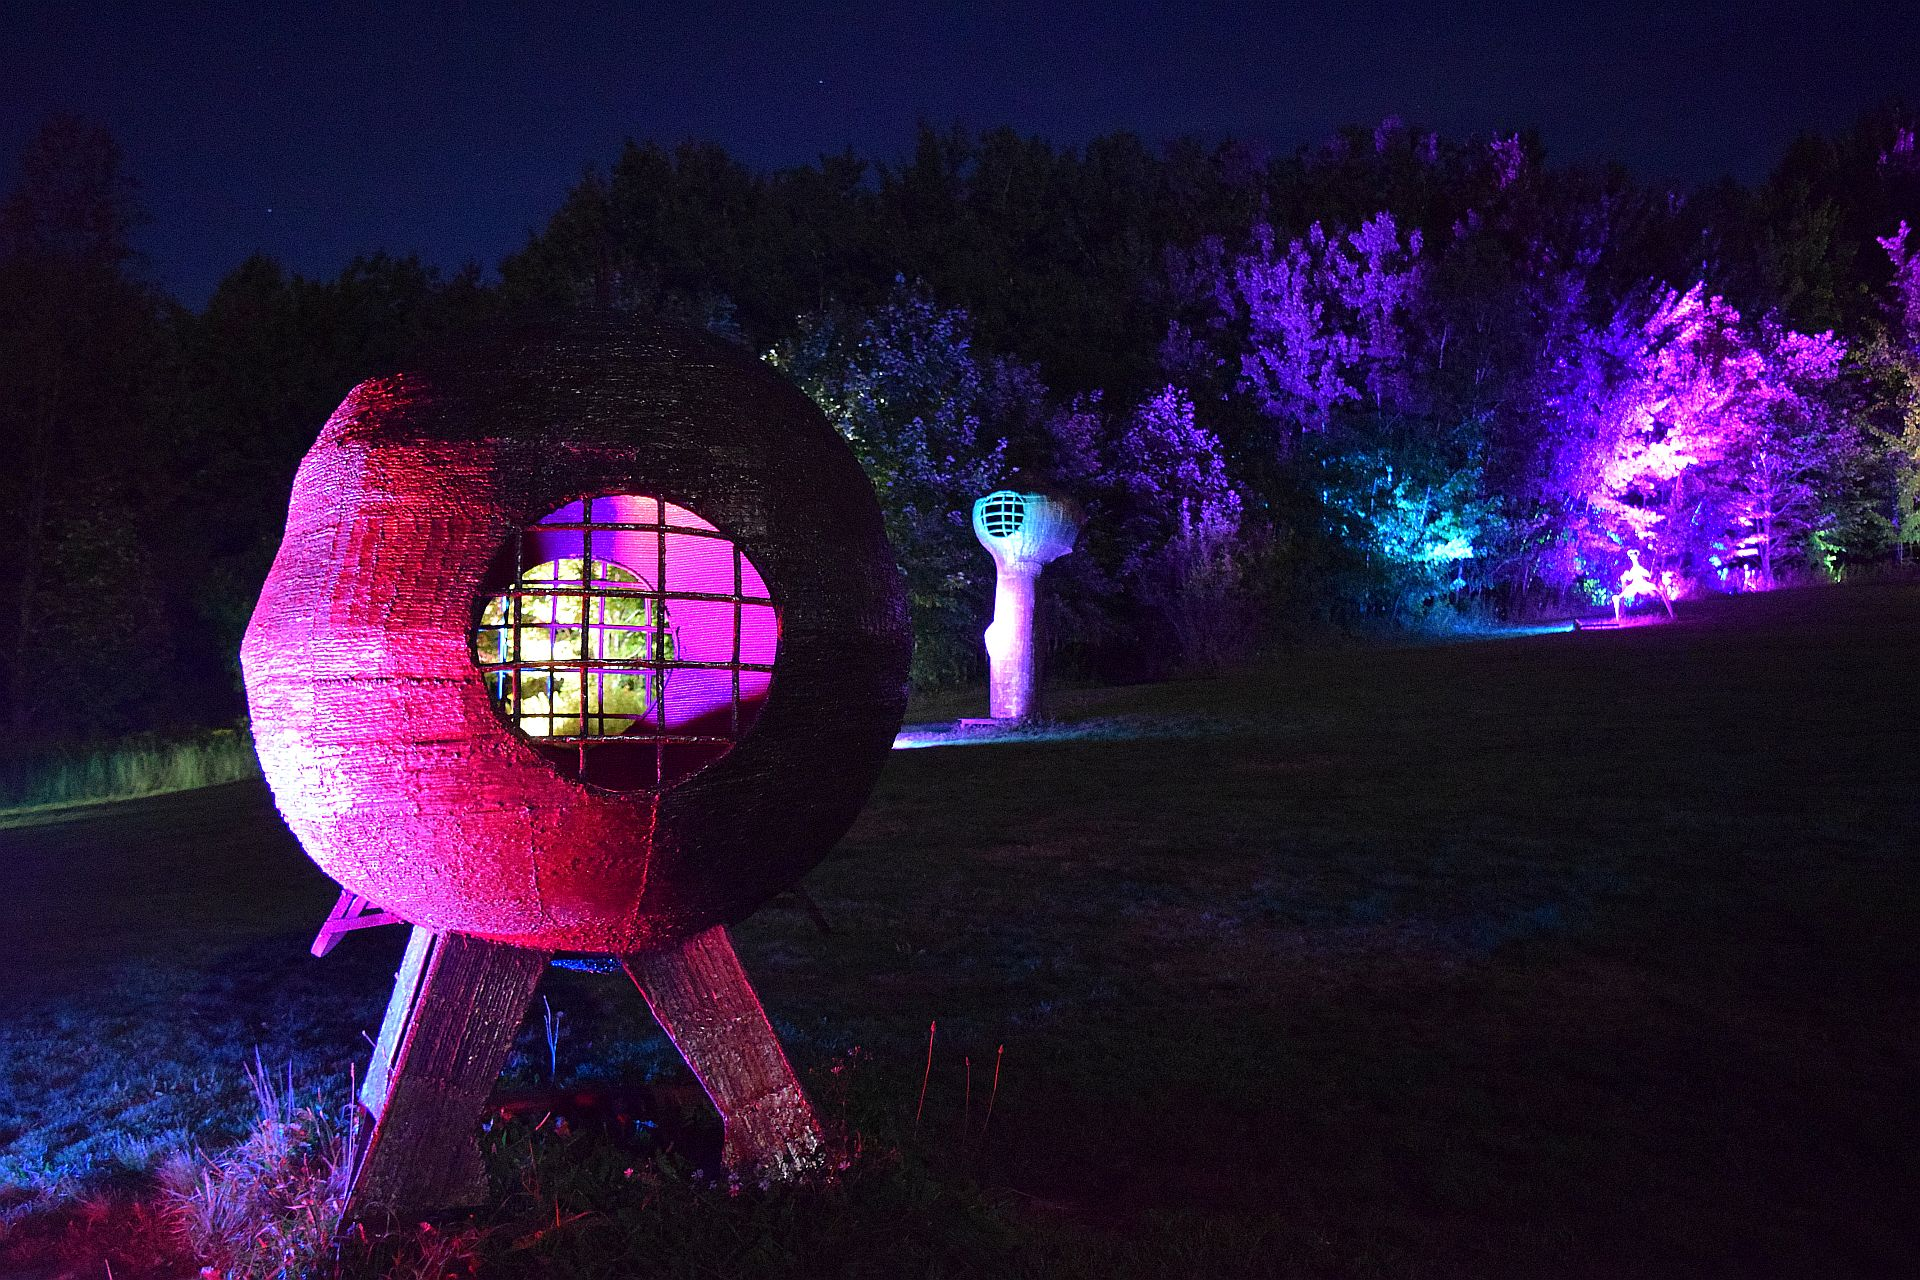 SitlerHQ produced NIGHT LIGHTS at Griffis Sculpture Park returns for 7th year